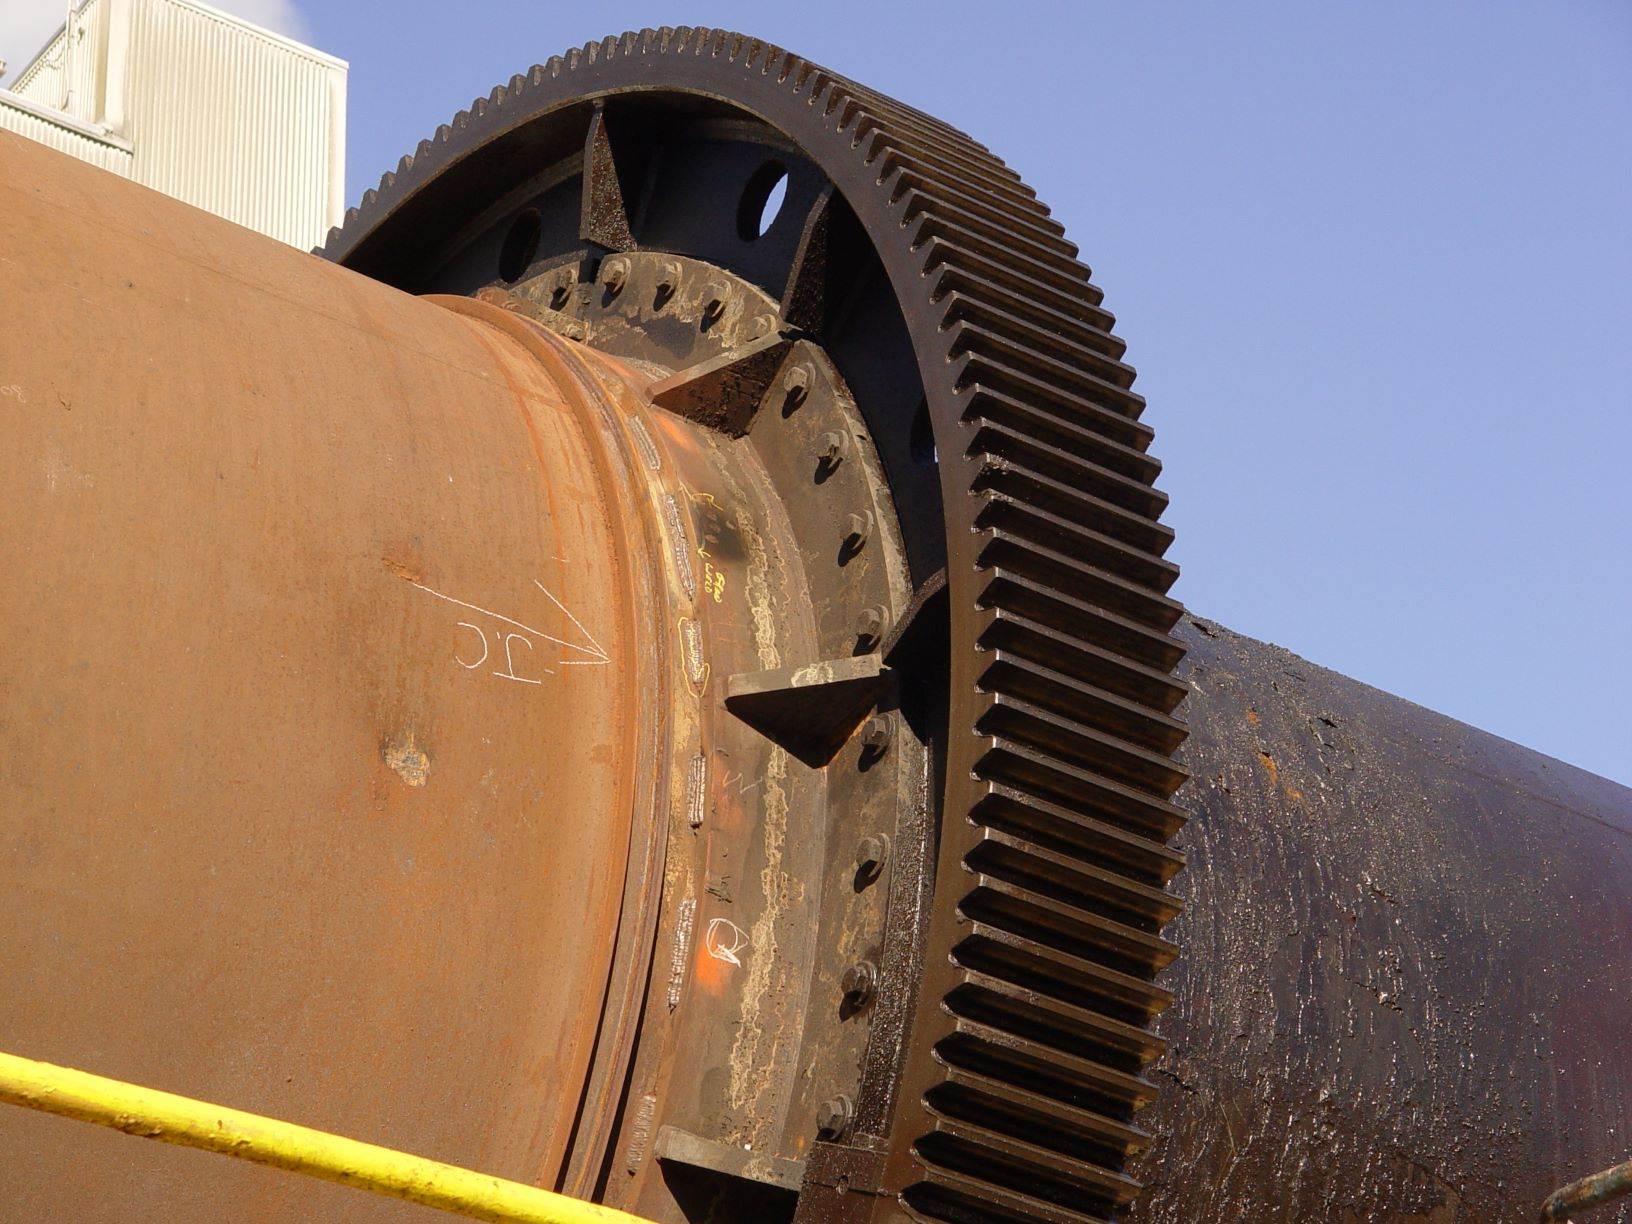 metso-rotary-kiln-gear-system-services